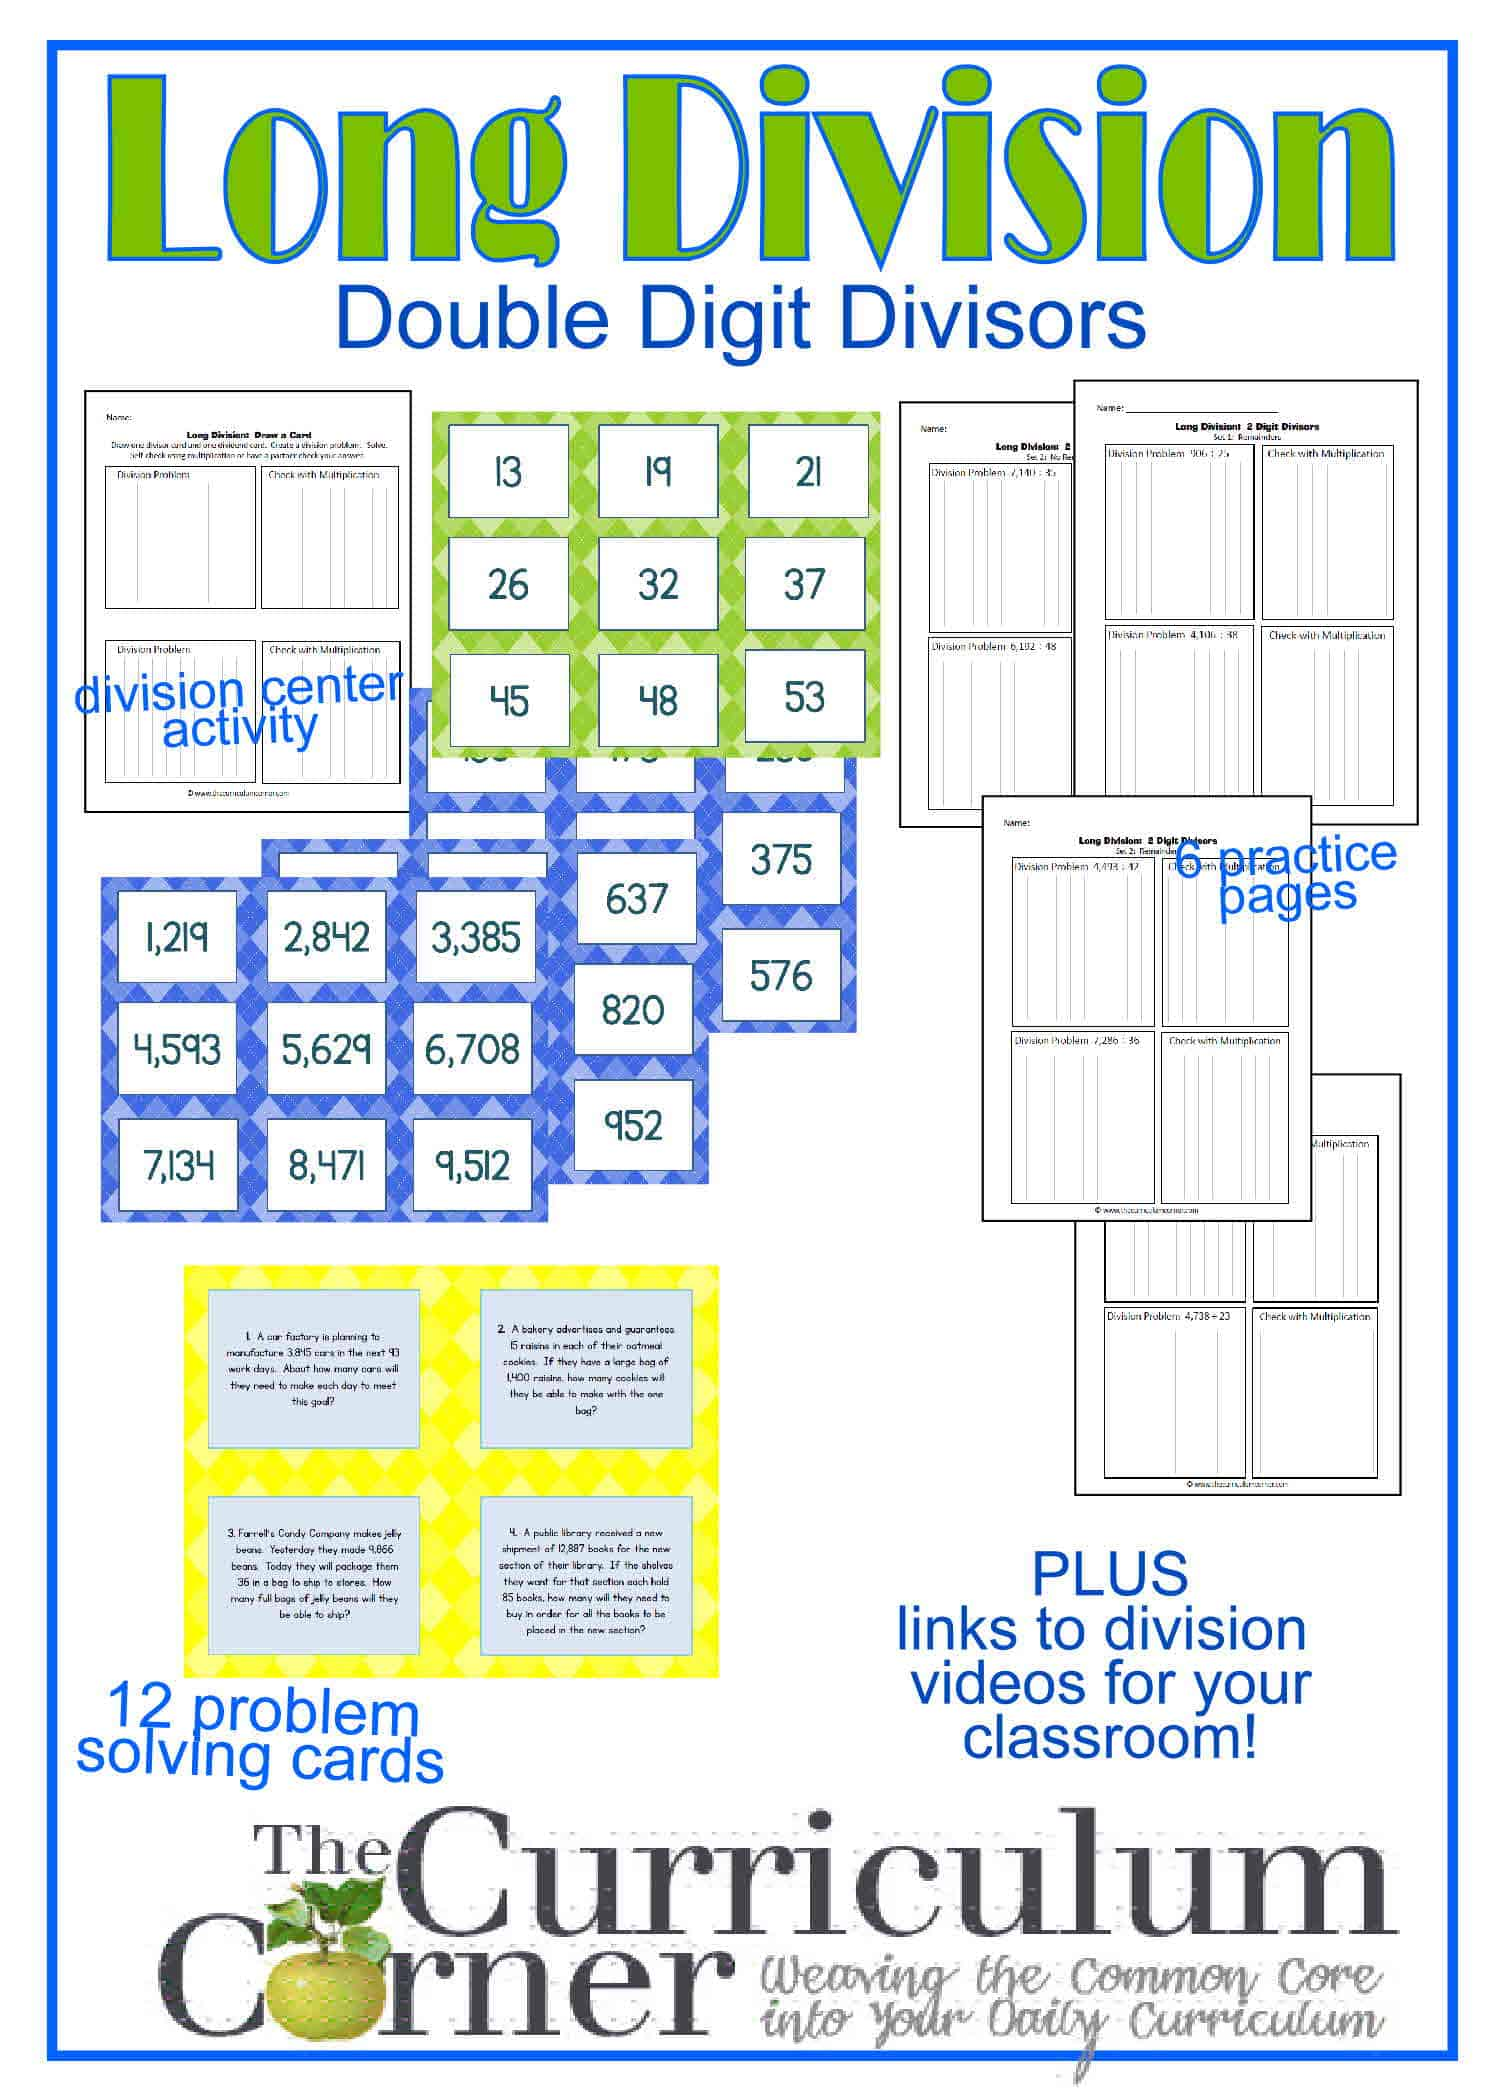 Worksheet Long Division 2 Digit Divisor long division resources 2 digit divisor the curriculum corner ong dividing by a double center activity practice pages